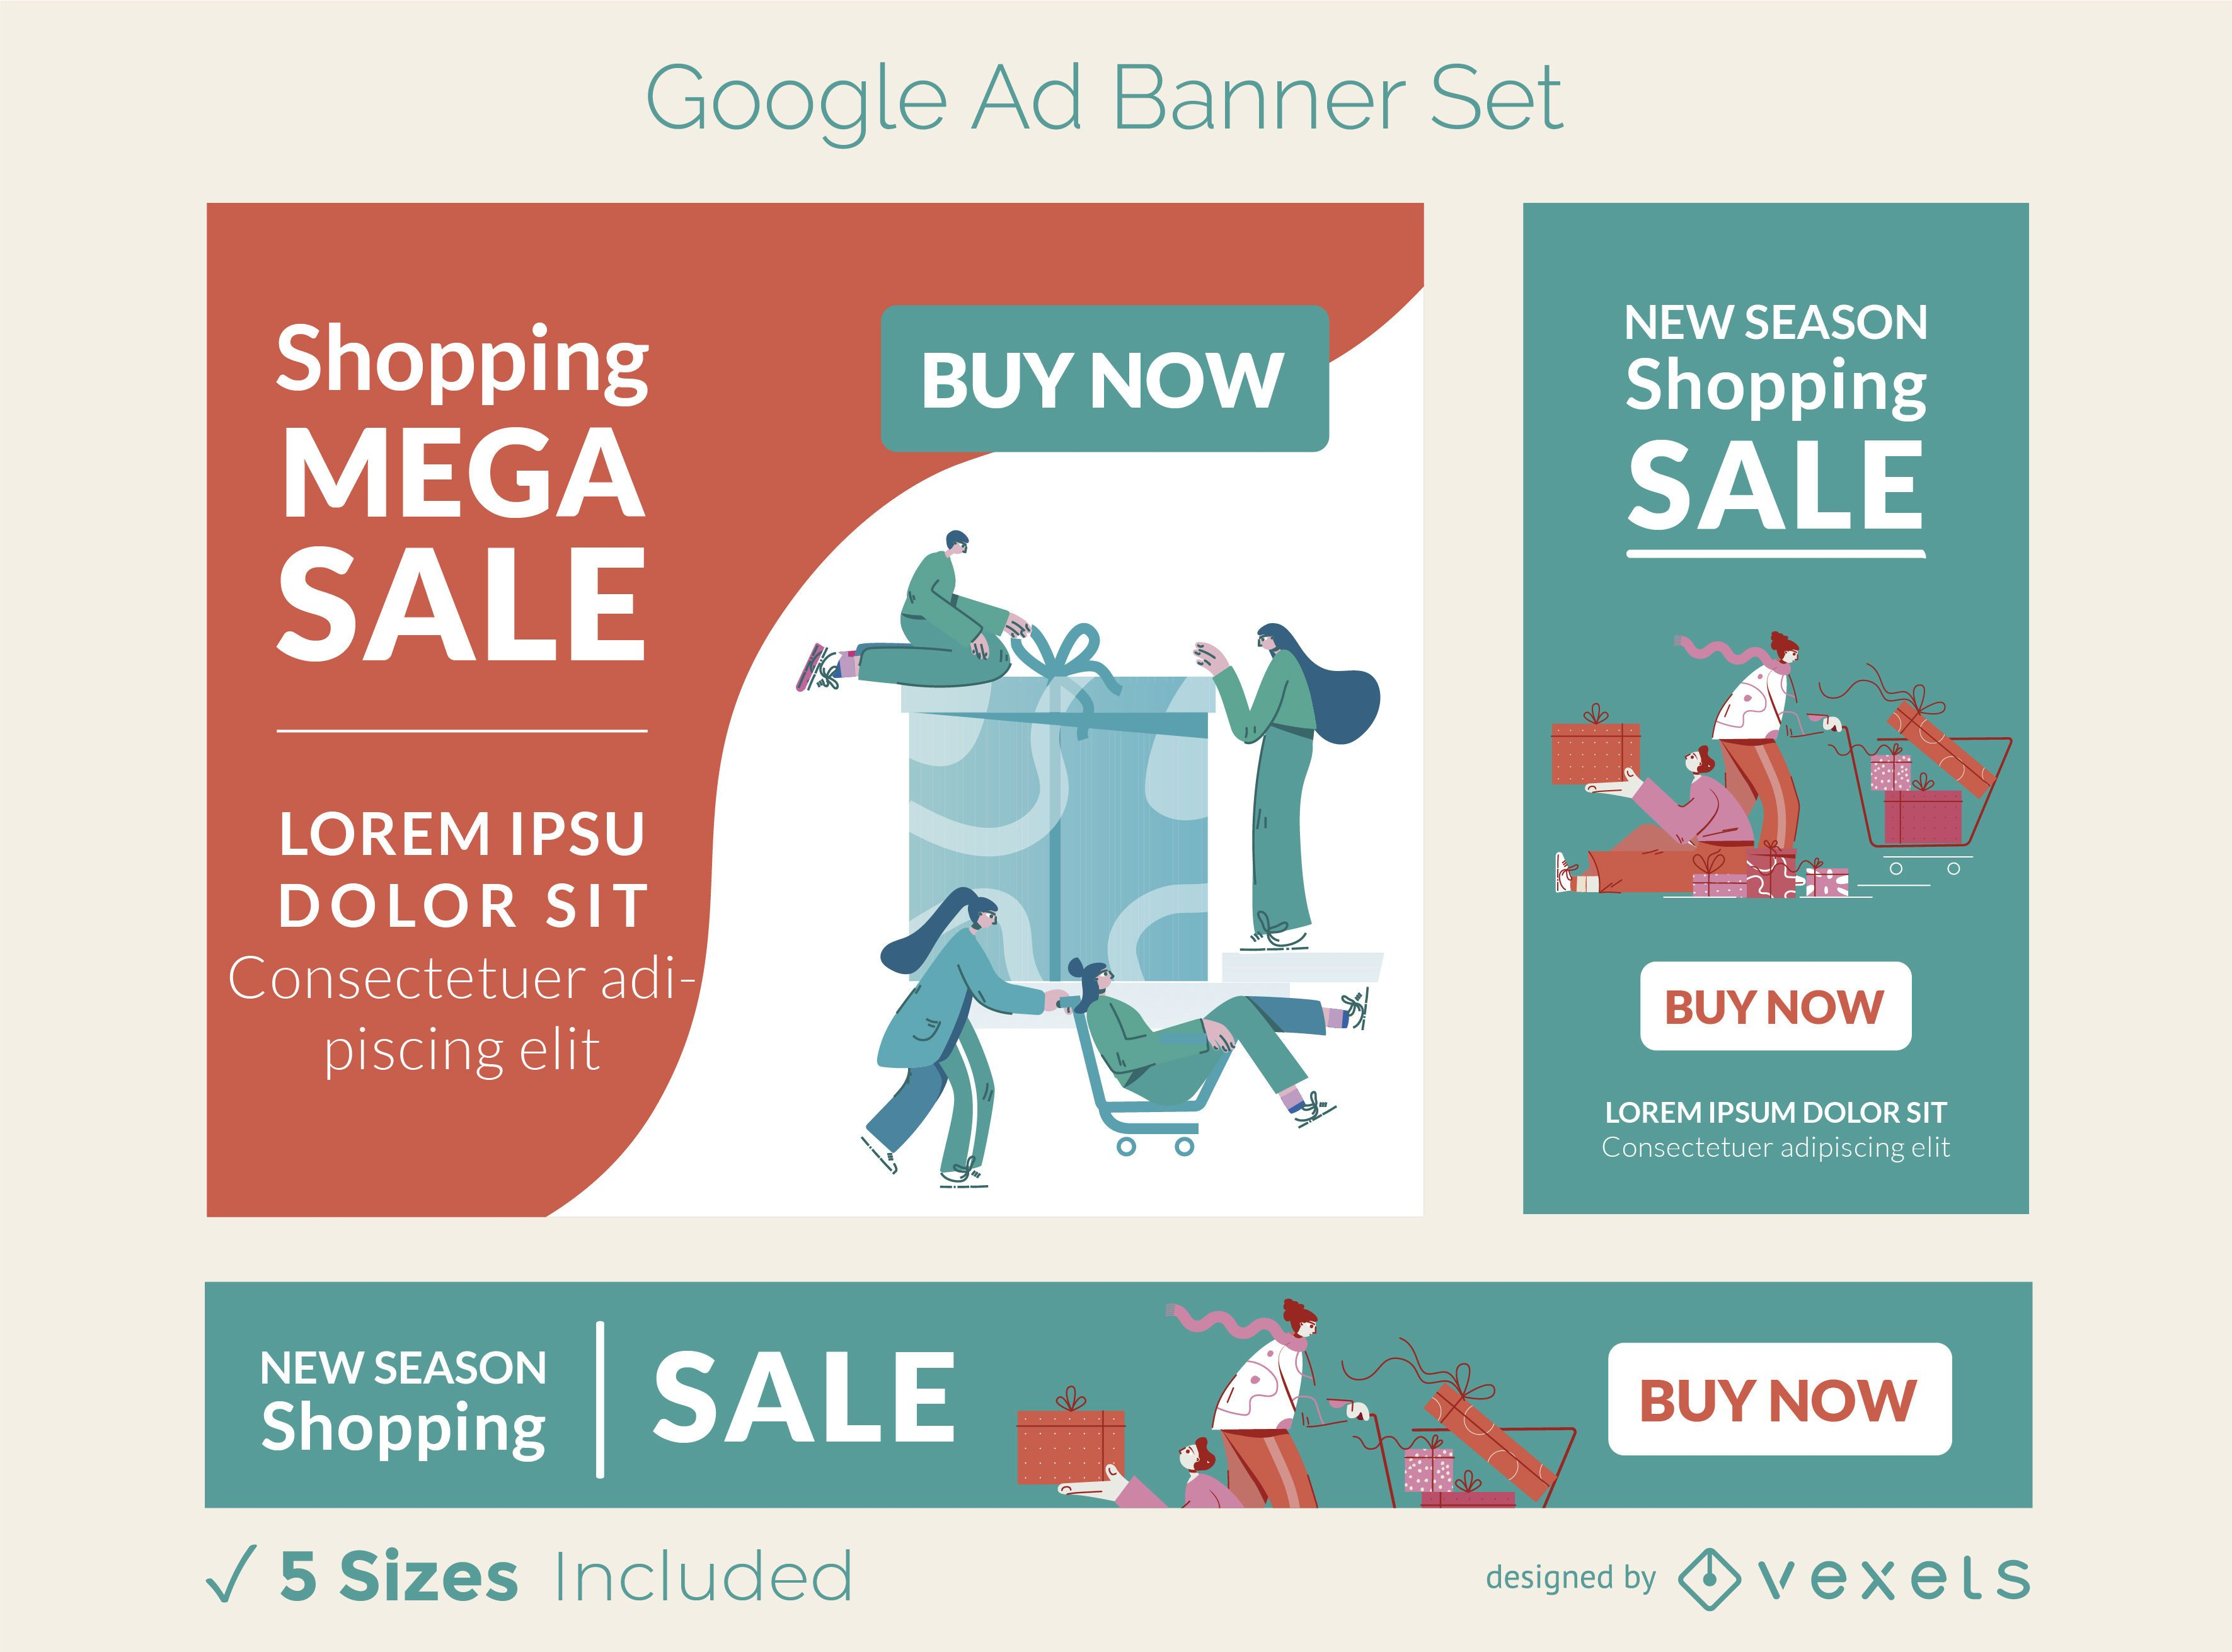 Shopping sale ad banner set